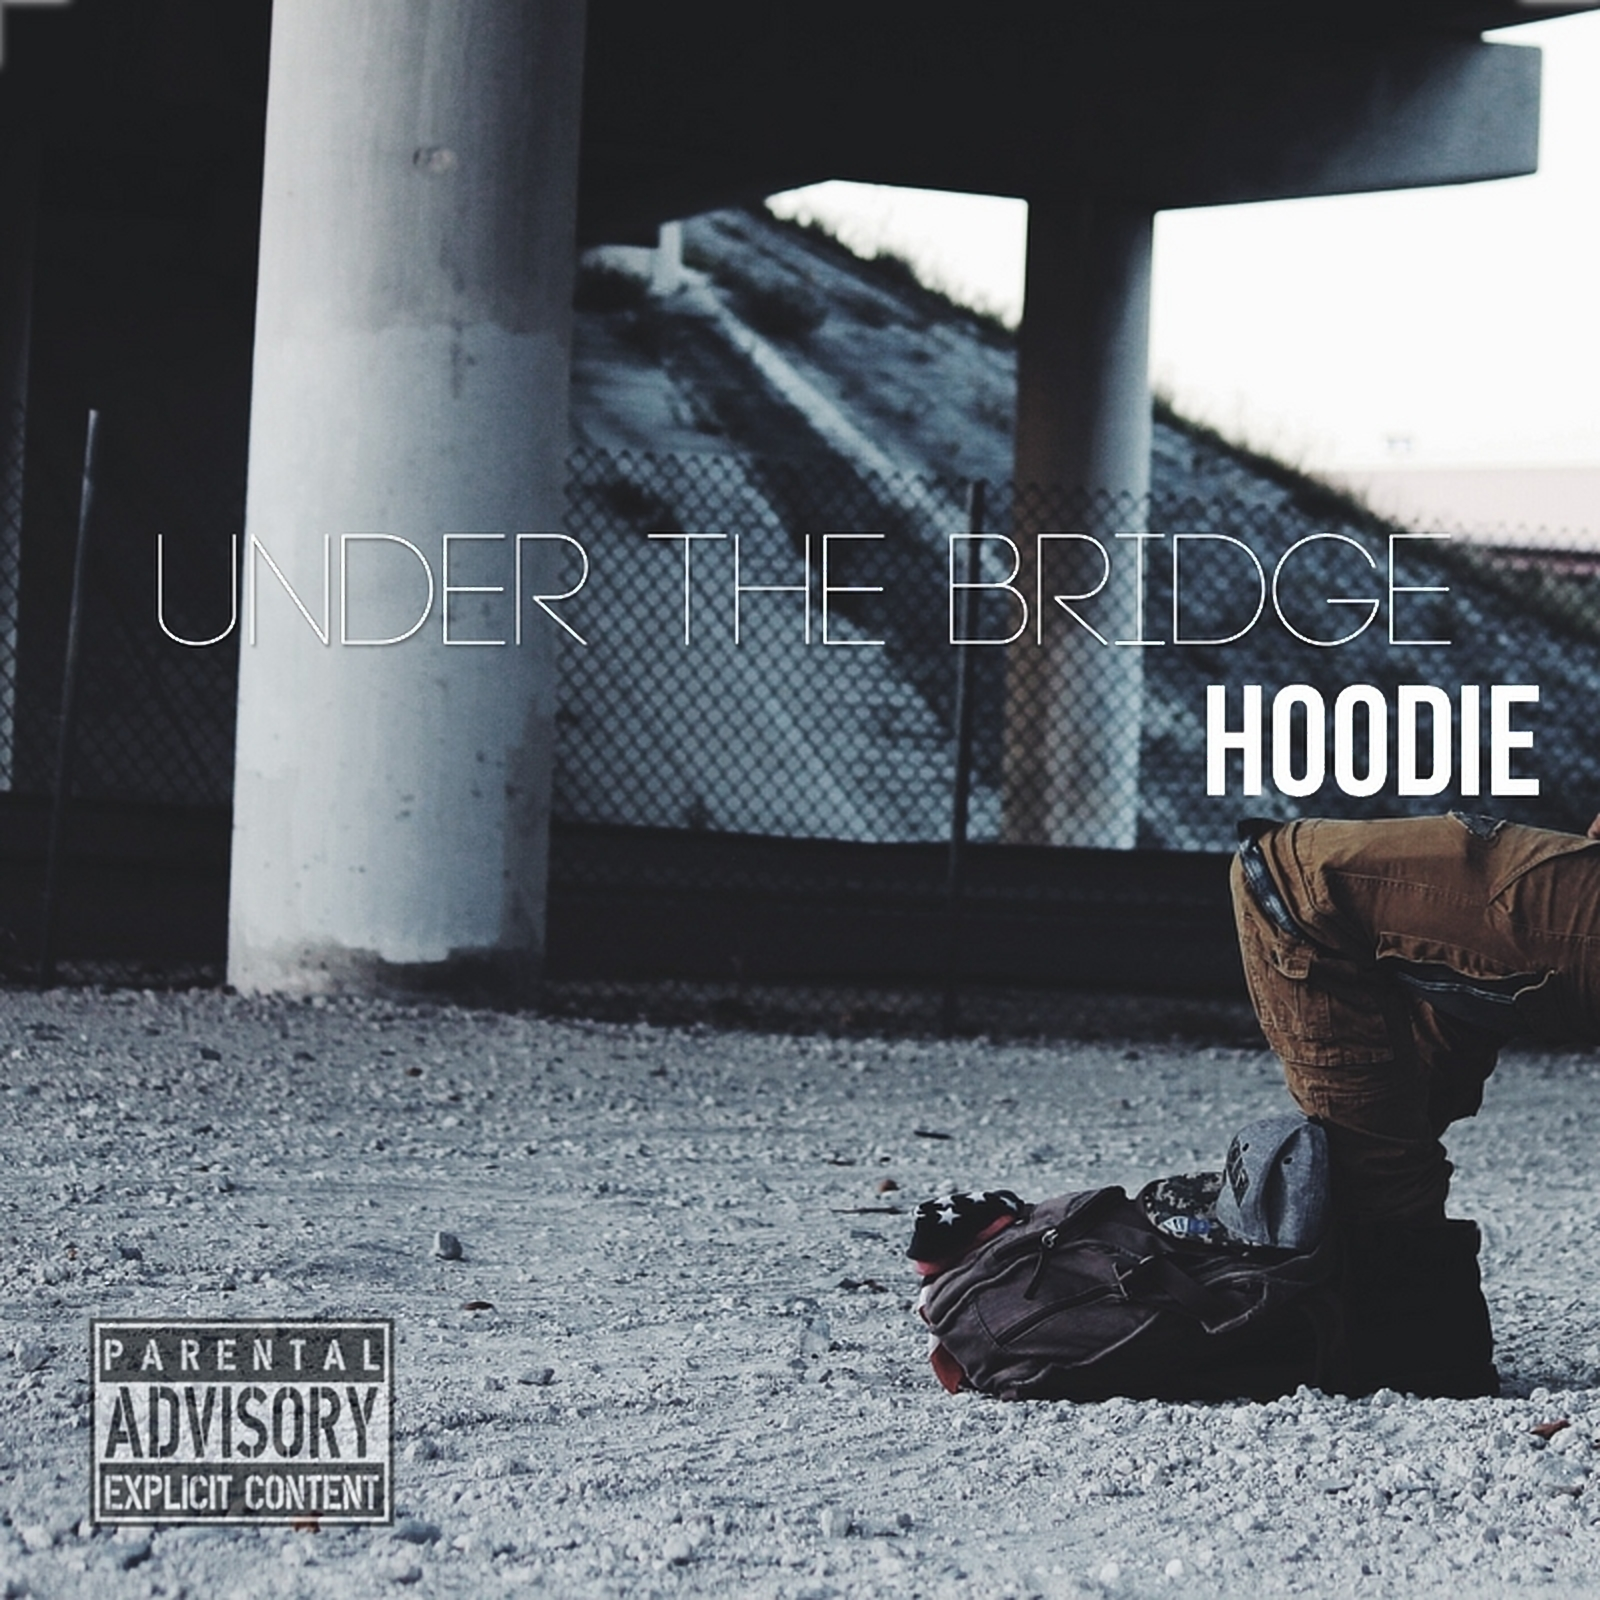 00 - Hoodie_Under_The_Bridge-front-large.jpg.jpg